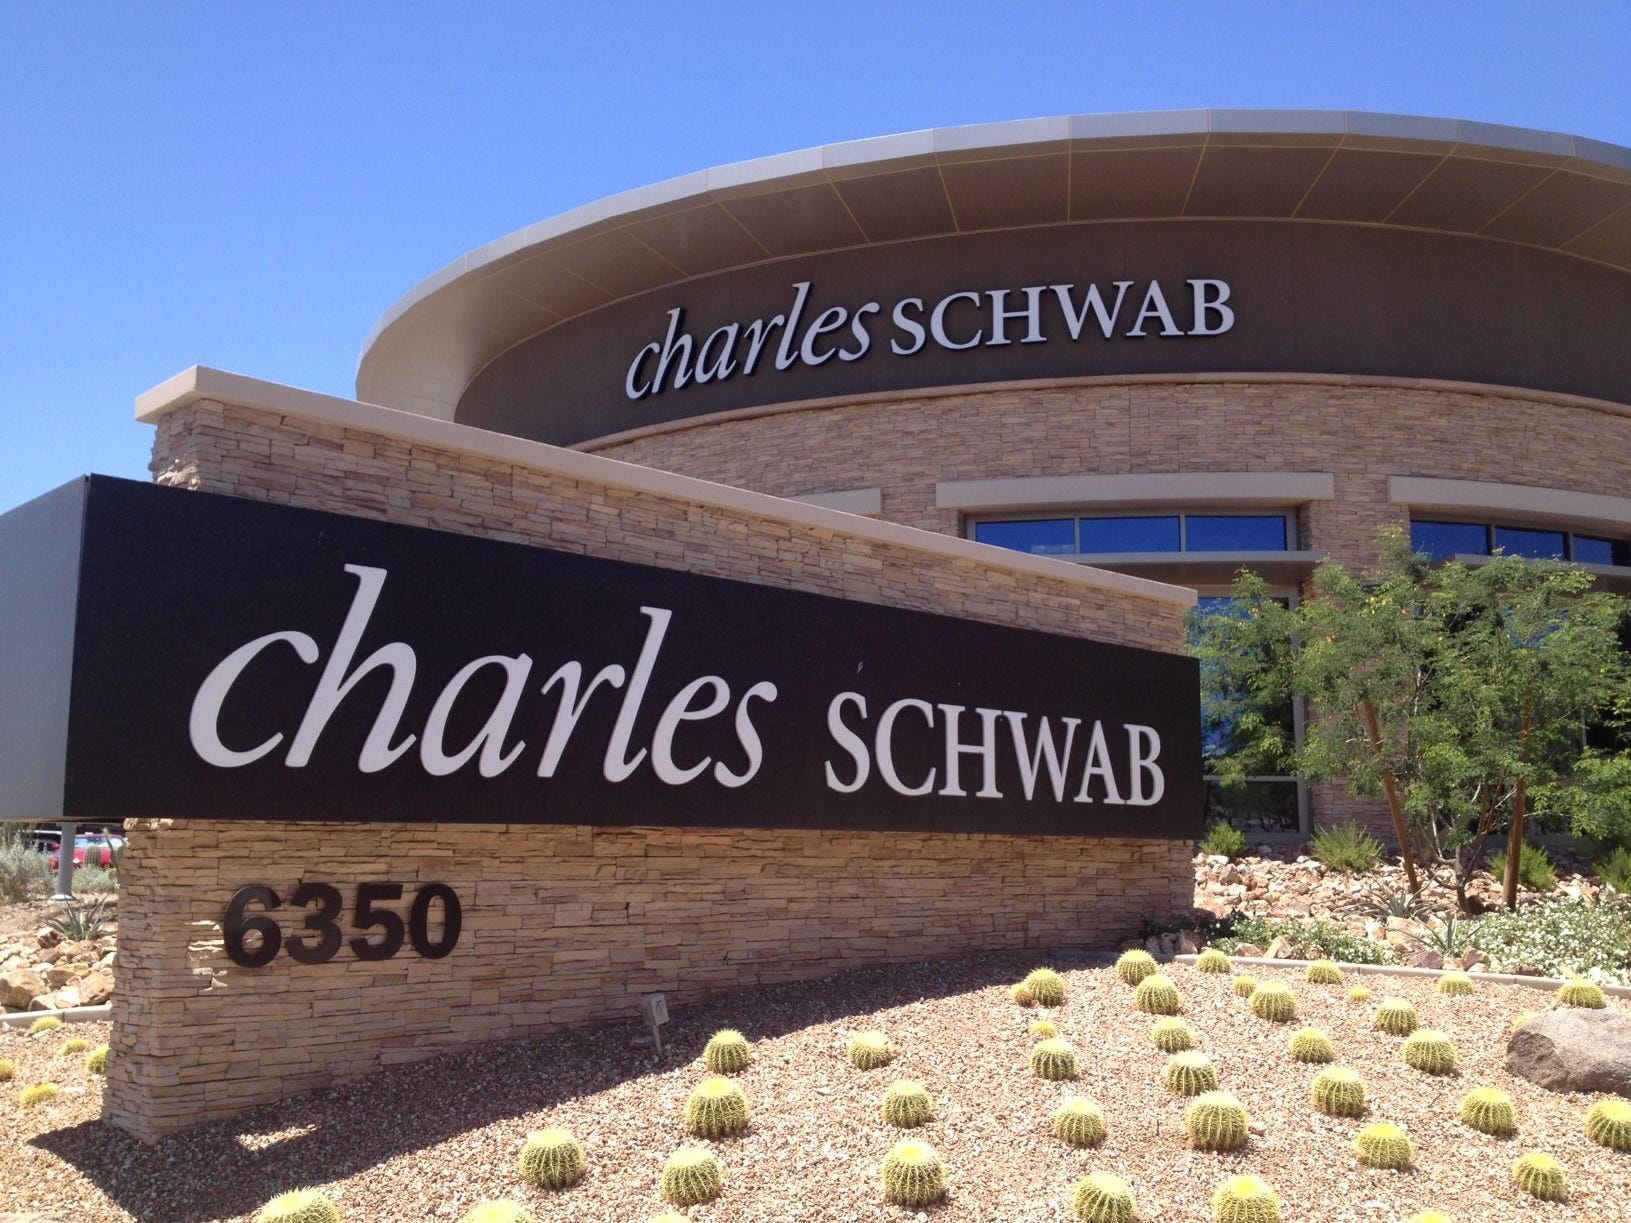 Charles Schwab Corp., hiring 100. The financial services company is hiring for positions ranging from global services representatives to relationship specialists. More info: schwabjobs.com.